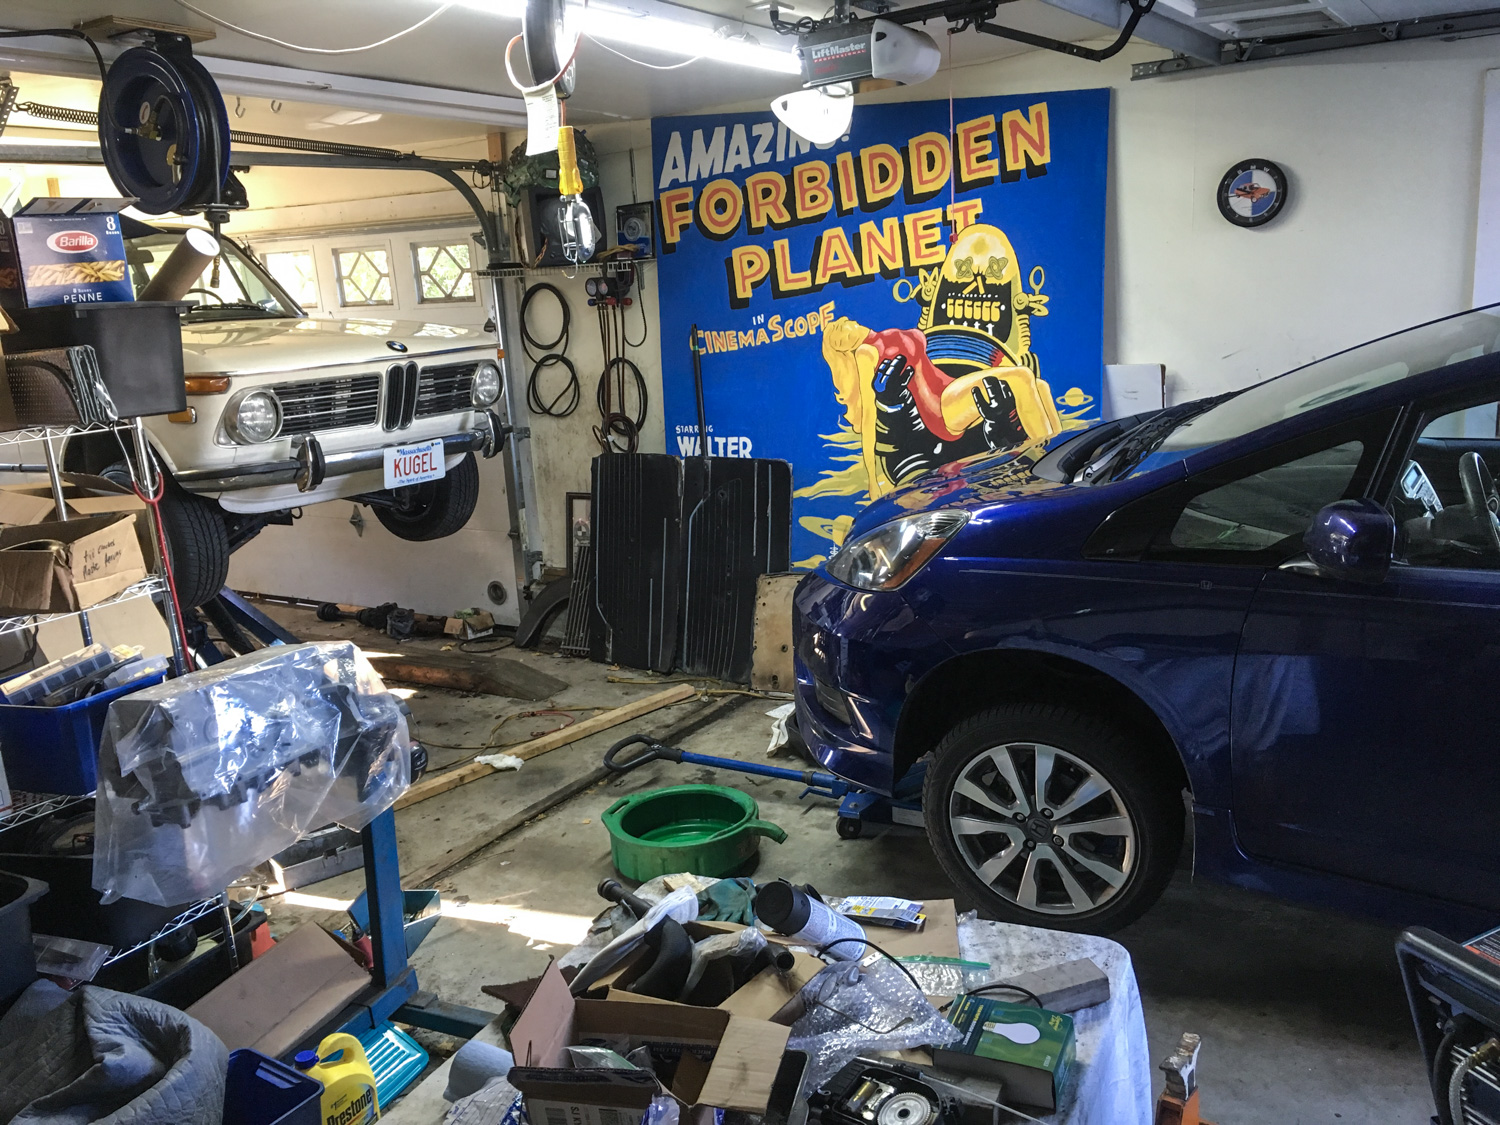 Because the mid-rise-lift is almost always occupied with a project car, maintenance on daily drivers is often performed with just the nose of the car in the garage.